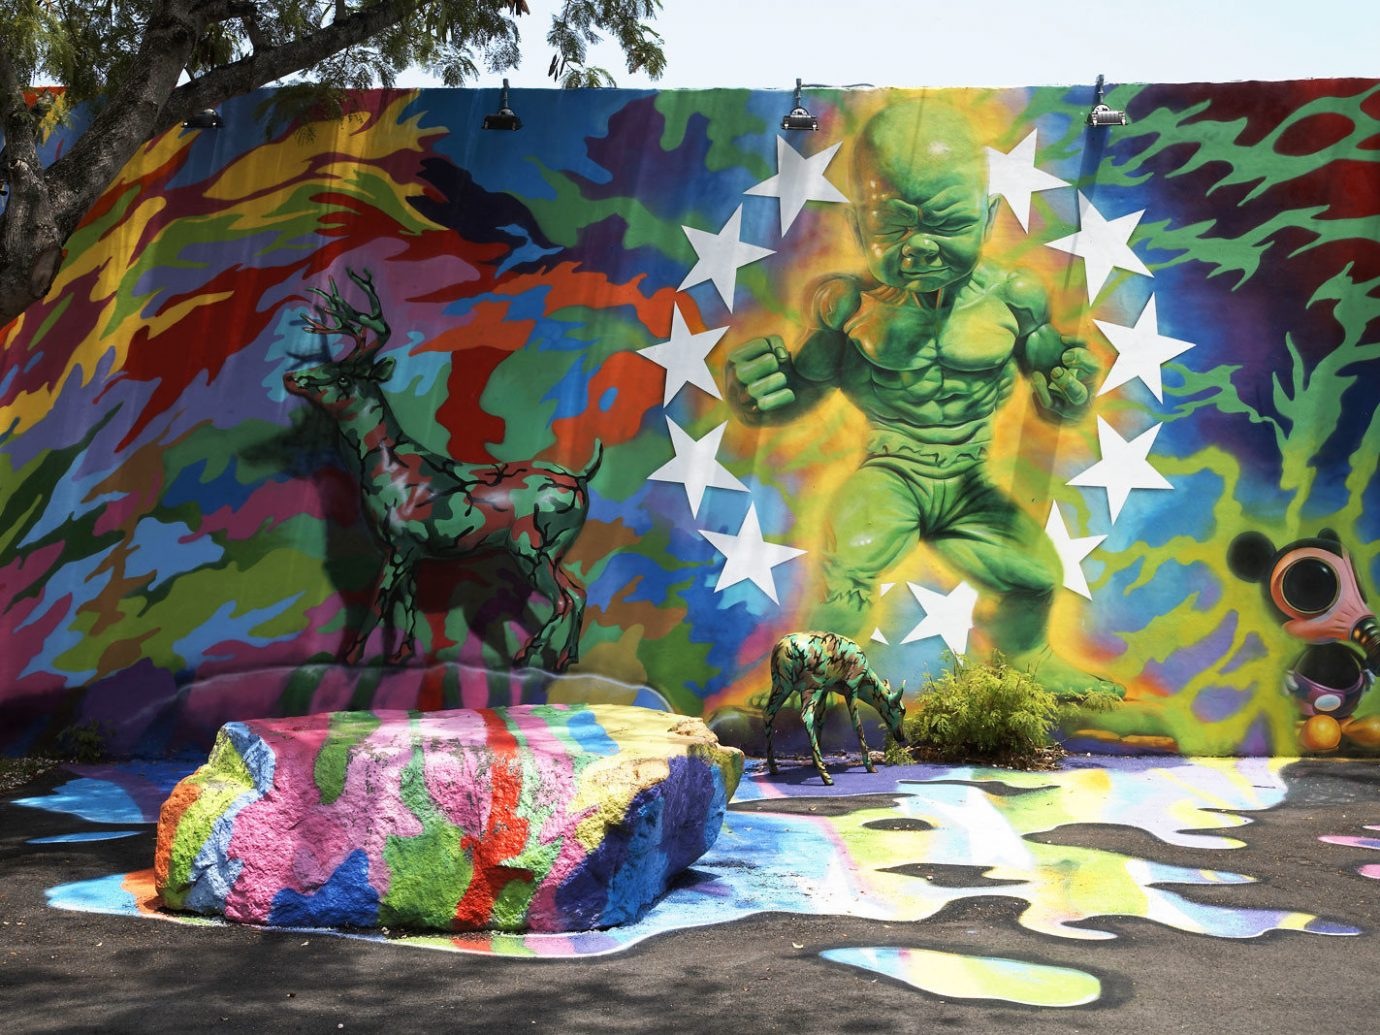 art Arts + Culture City city streets city views colorful graffiti rock street art urban color mural painting modern art colored child art psychedelic art painted bedclothes decorated colors